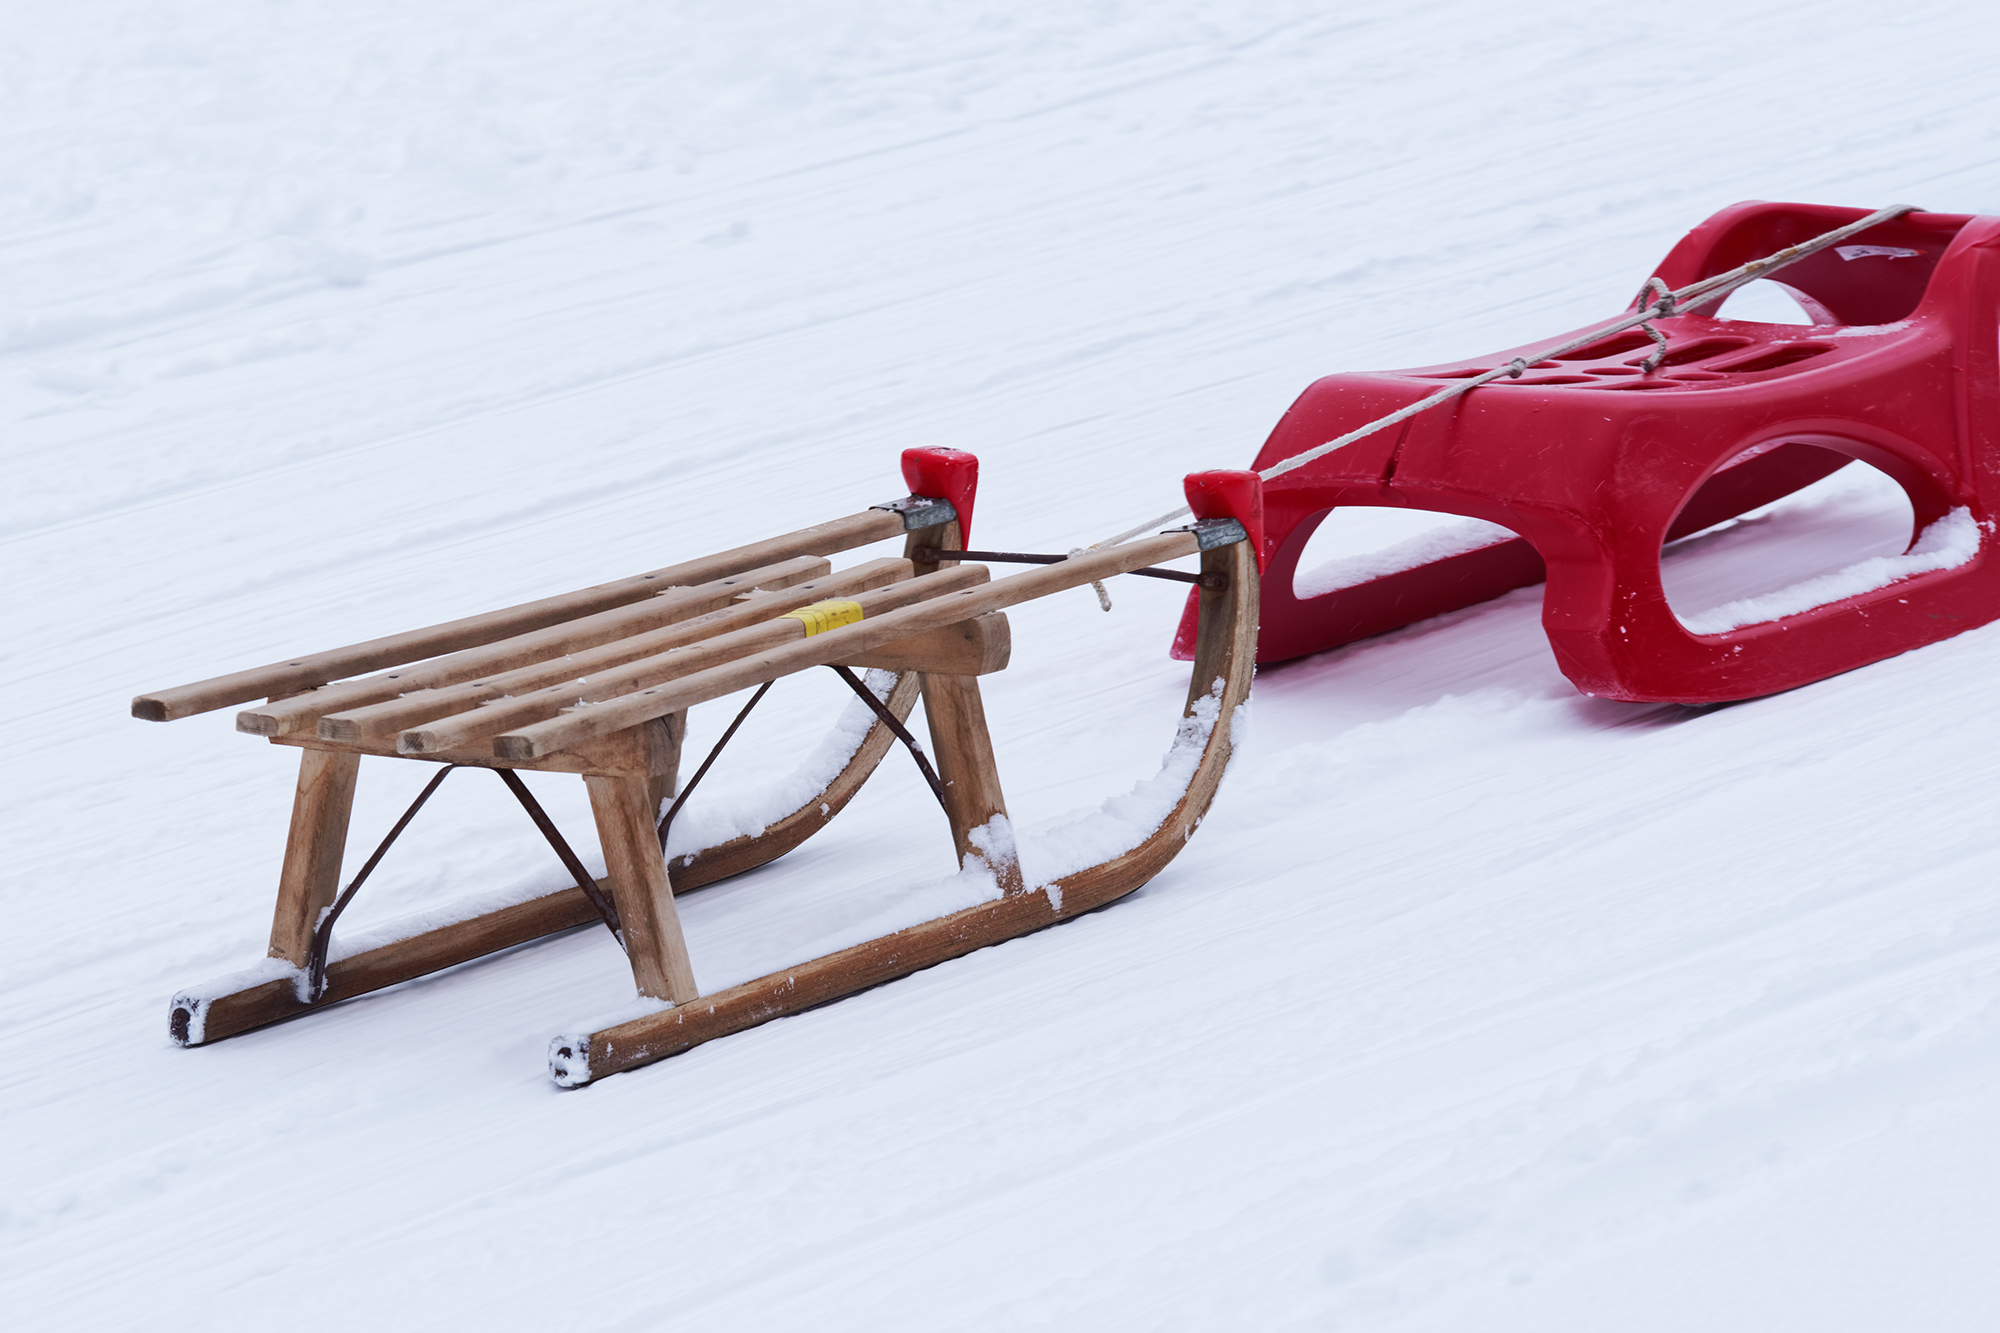 Sleds in winter